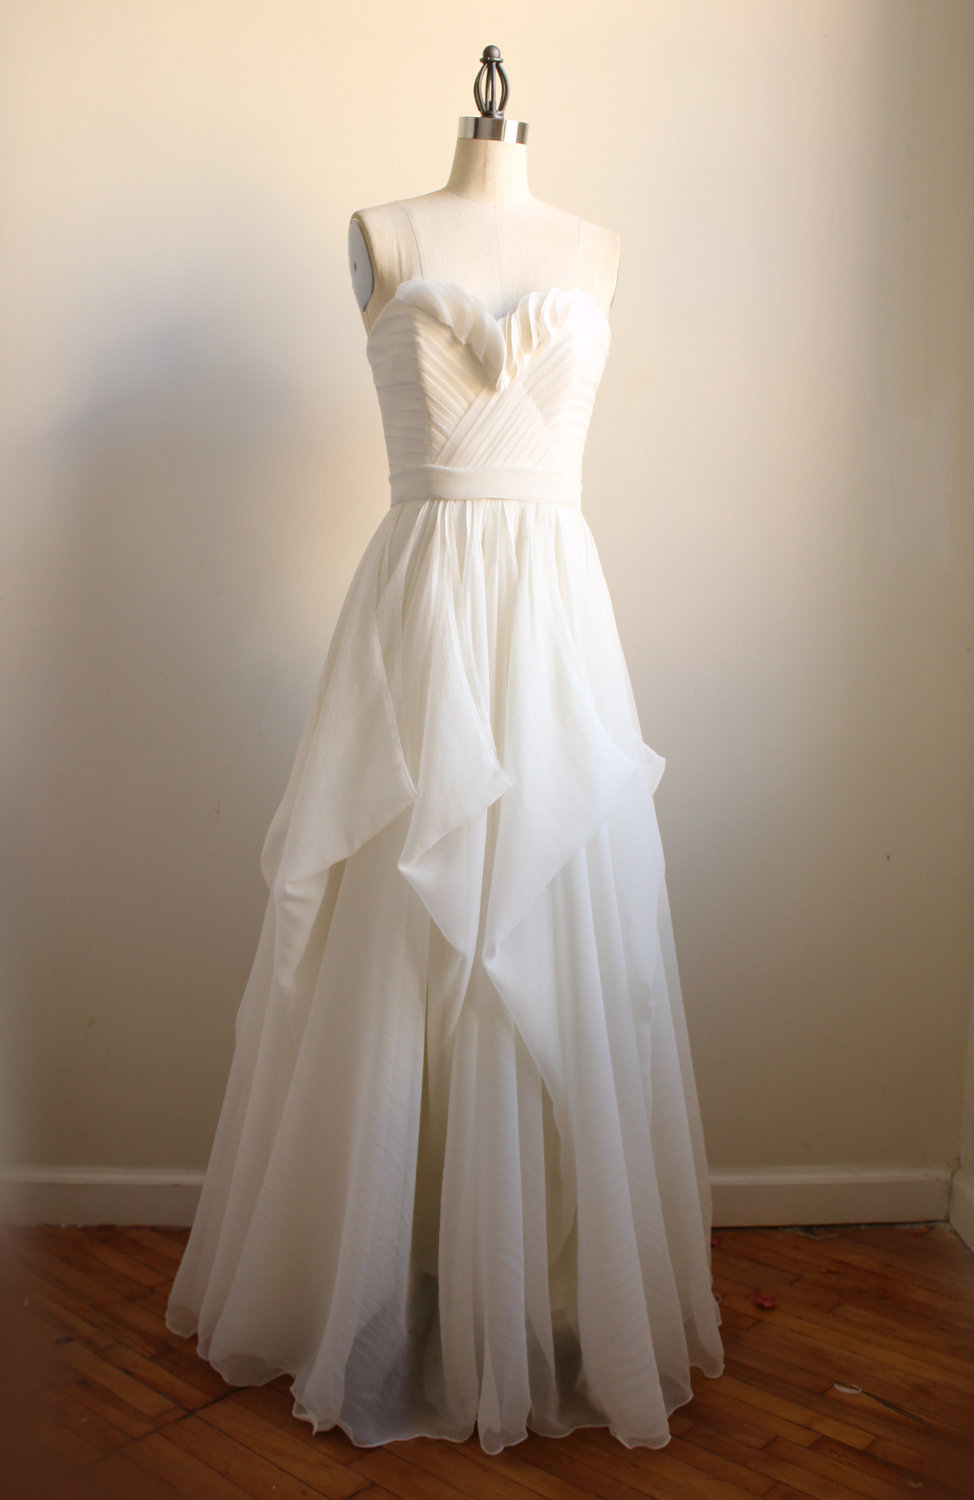 Handmade wedding dresses etsy bridal gown julietta for Wedding dress on etsy